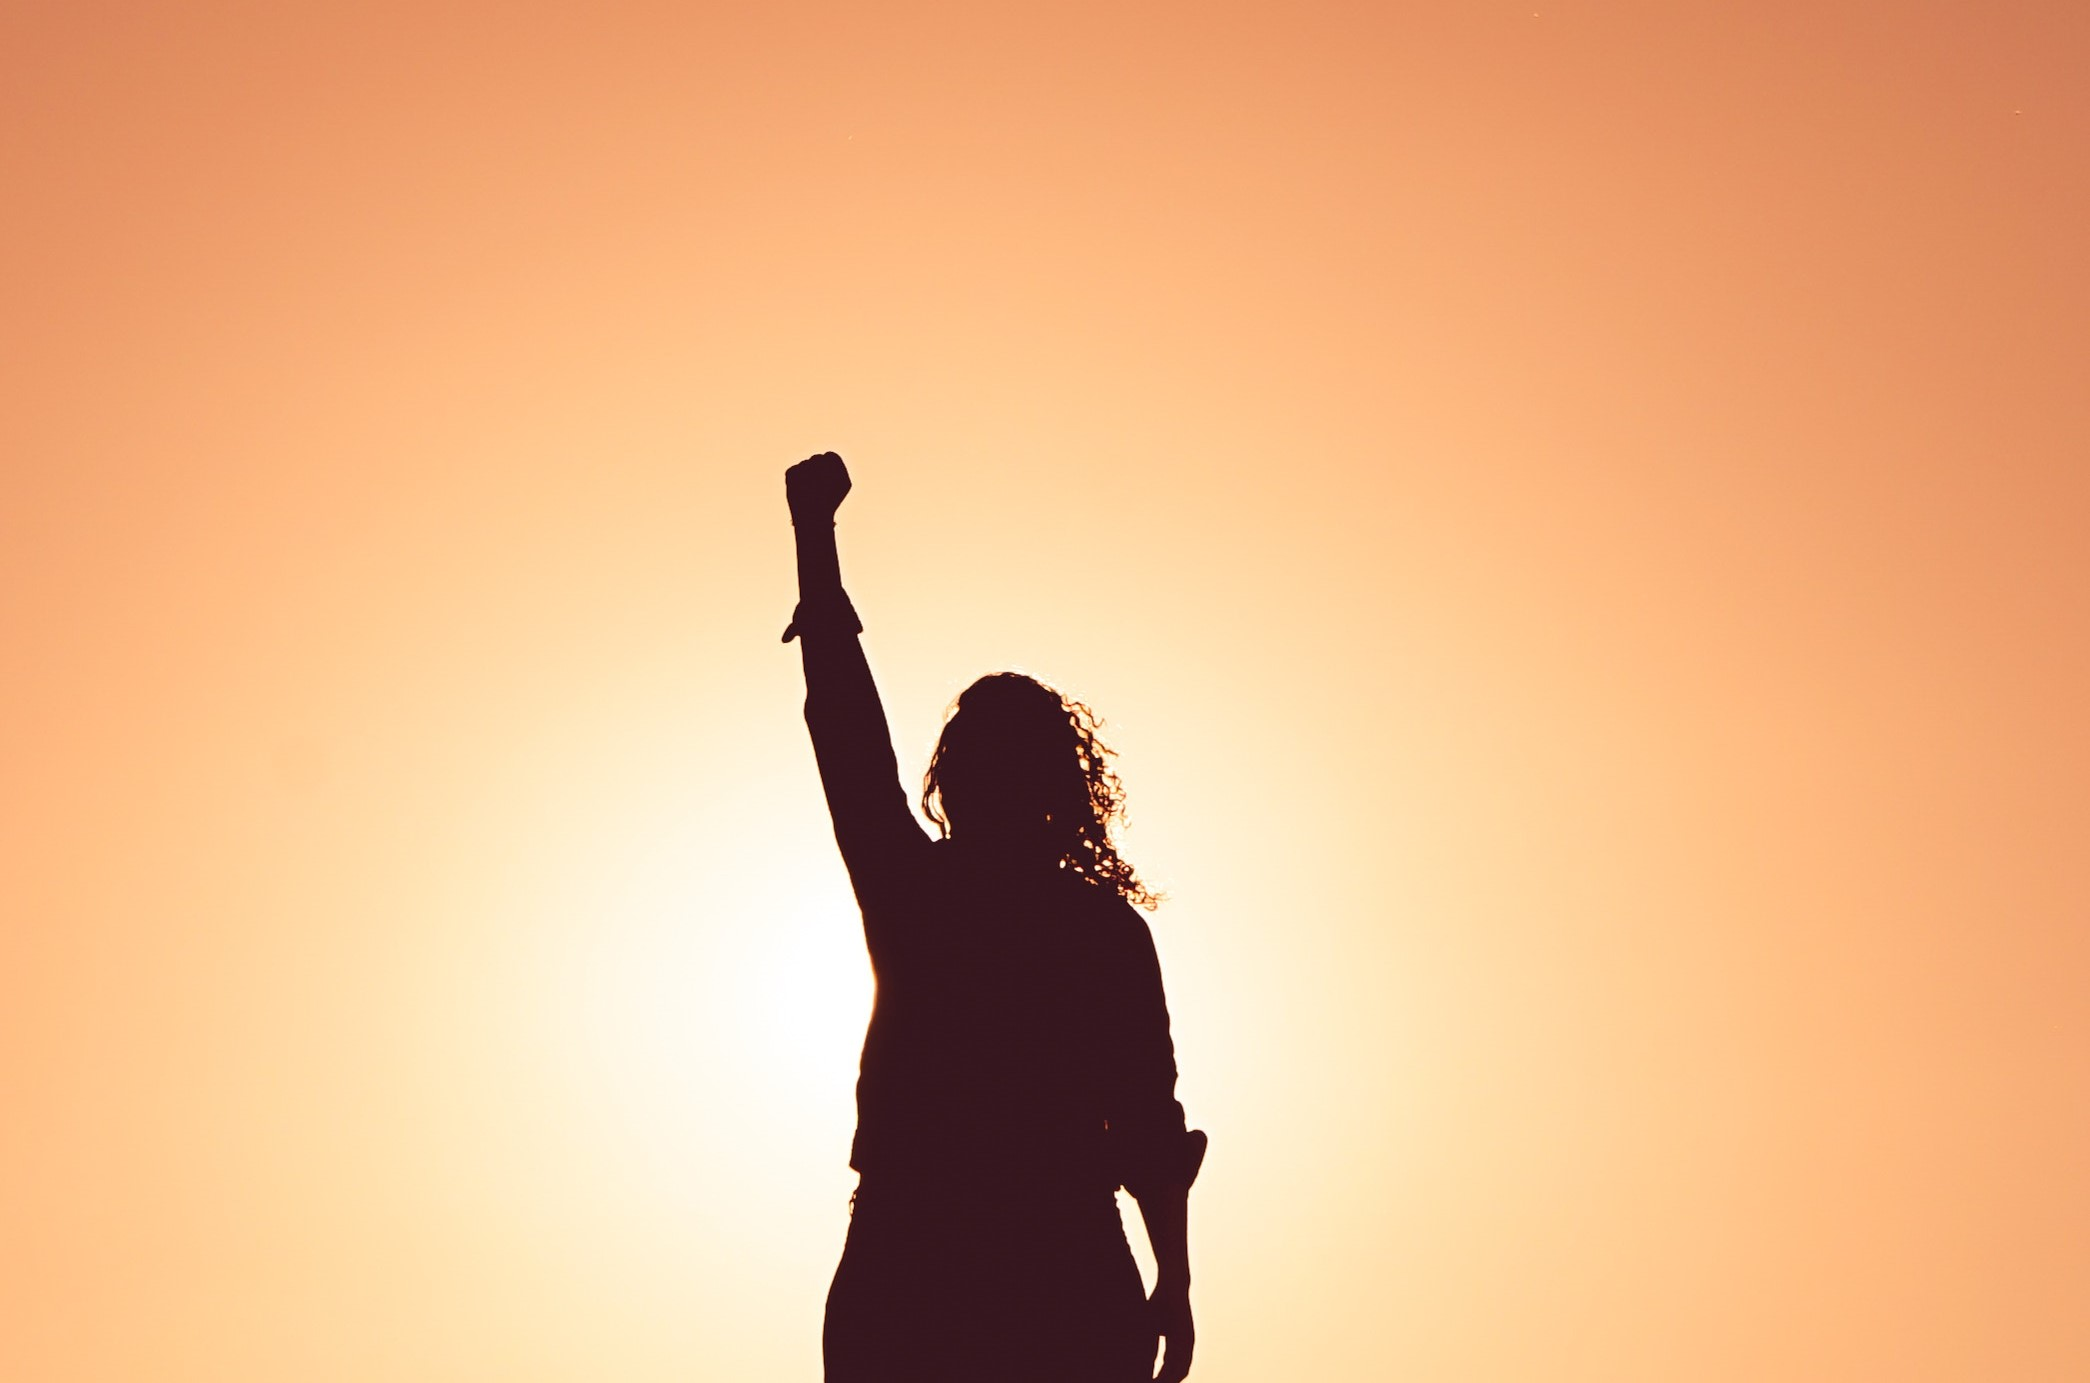 Woman in shadow with her fist raised in the air